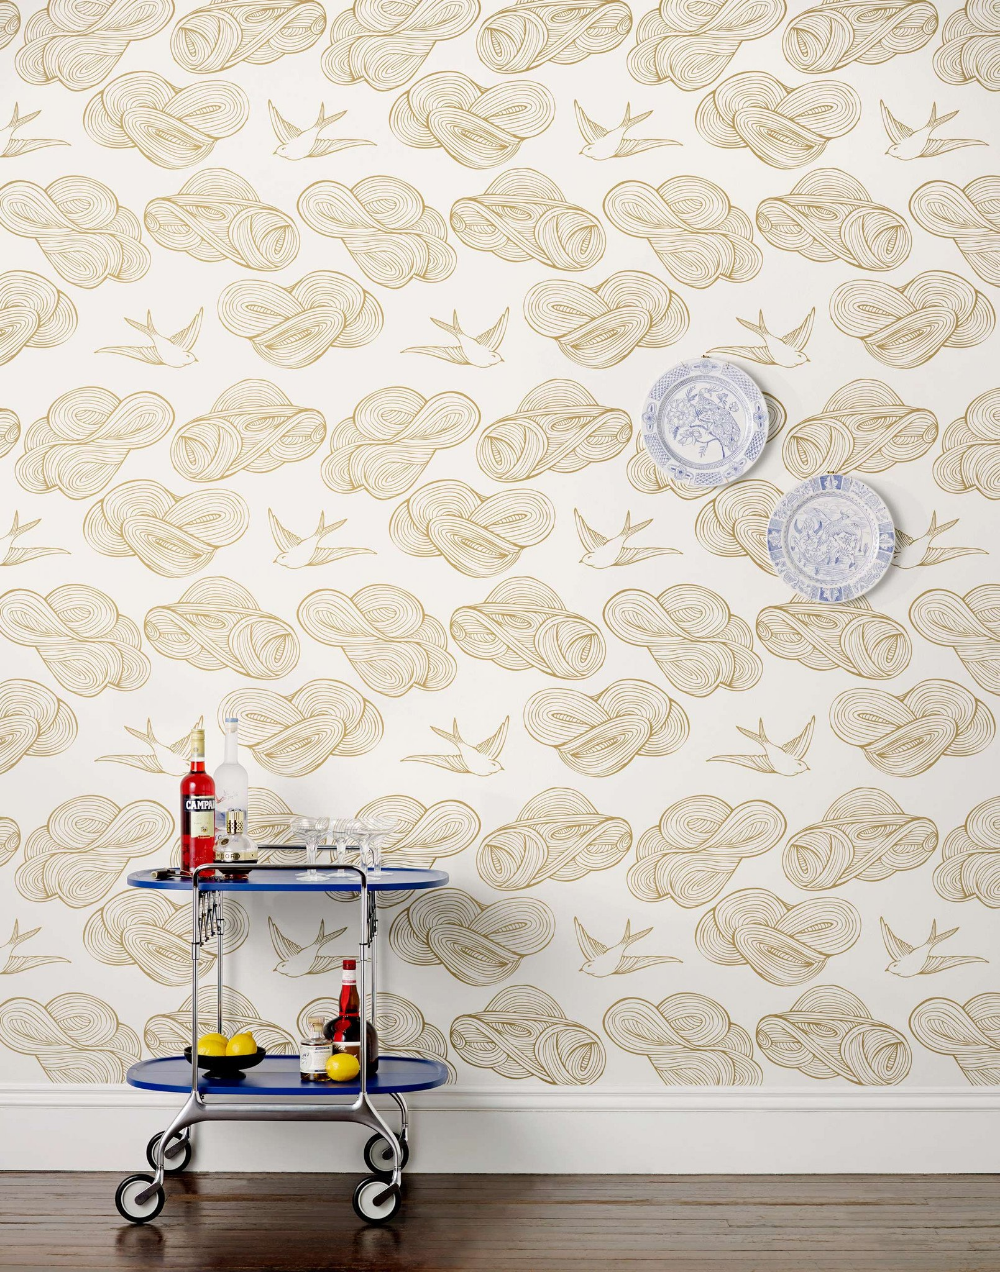 Daydream (Gold) Gold wallpaper, Gold rooms, Wall coverings